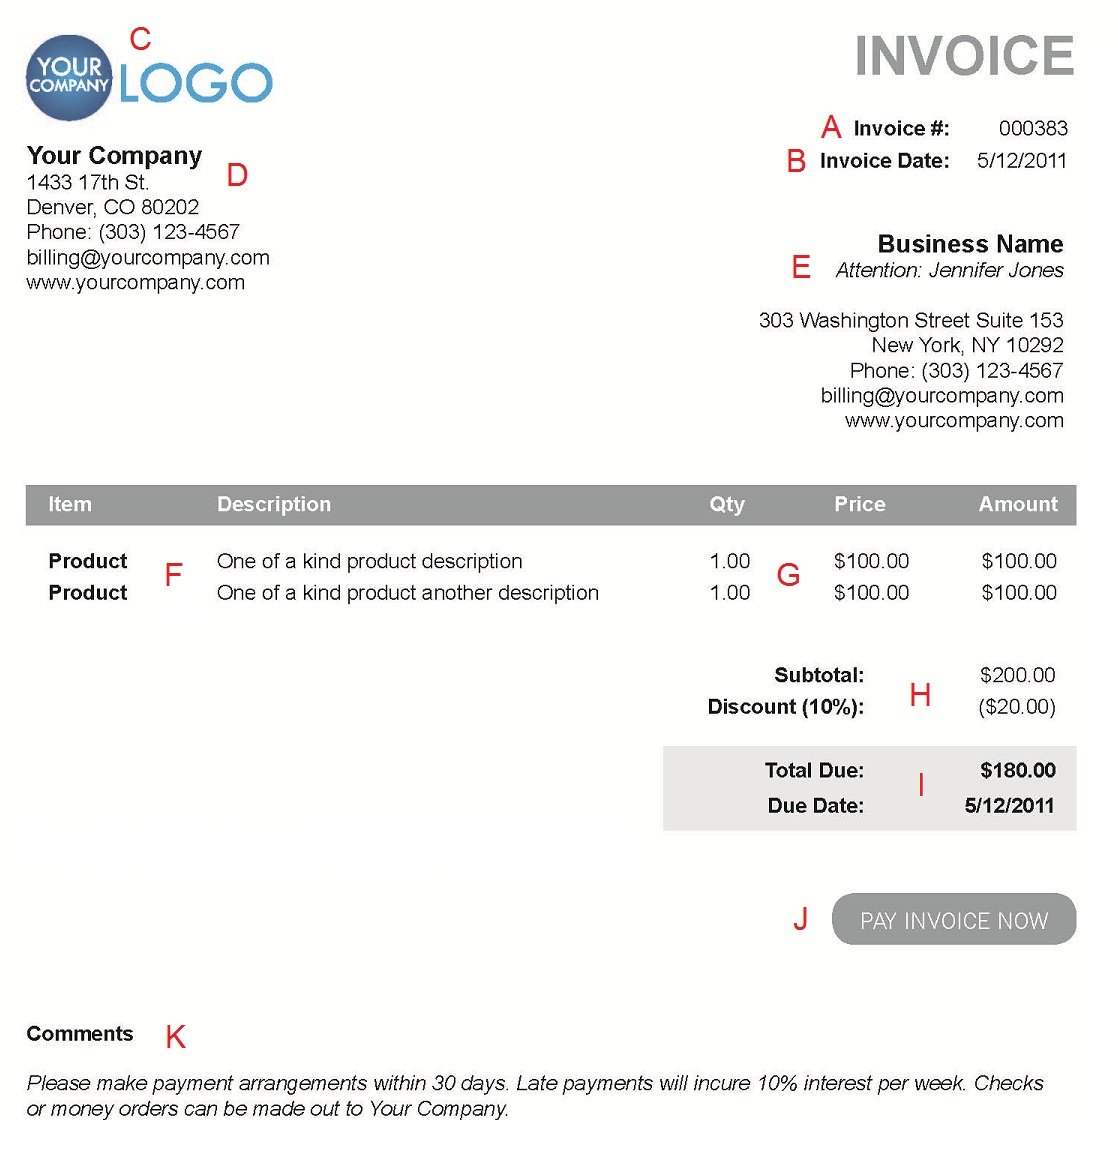 Weverducreus  Pretty The  Different Sections Of An Electronic Payment Invoice With Foxy A  With Charming Training Invoice Template Also Tally Invoice Format In Addition Invoice Receipt Template Free And How To Create An Invoice Template In Excel As Well As Performa Invoice Means Additionally Tax Invoice Layout From Paysimplecom With Weverducreus  Foxy The  Different Sections Of An Electronic Payment Invoice With Charming A  And Pretty Training Invoice Template Also Tally Invoice Format In Addition Invoice Receipt Template Free From Paysimplecom